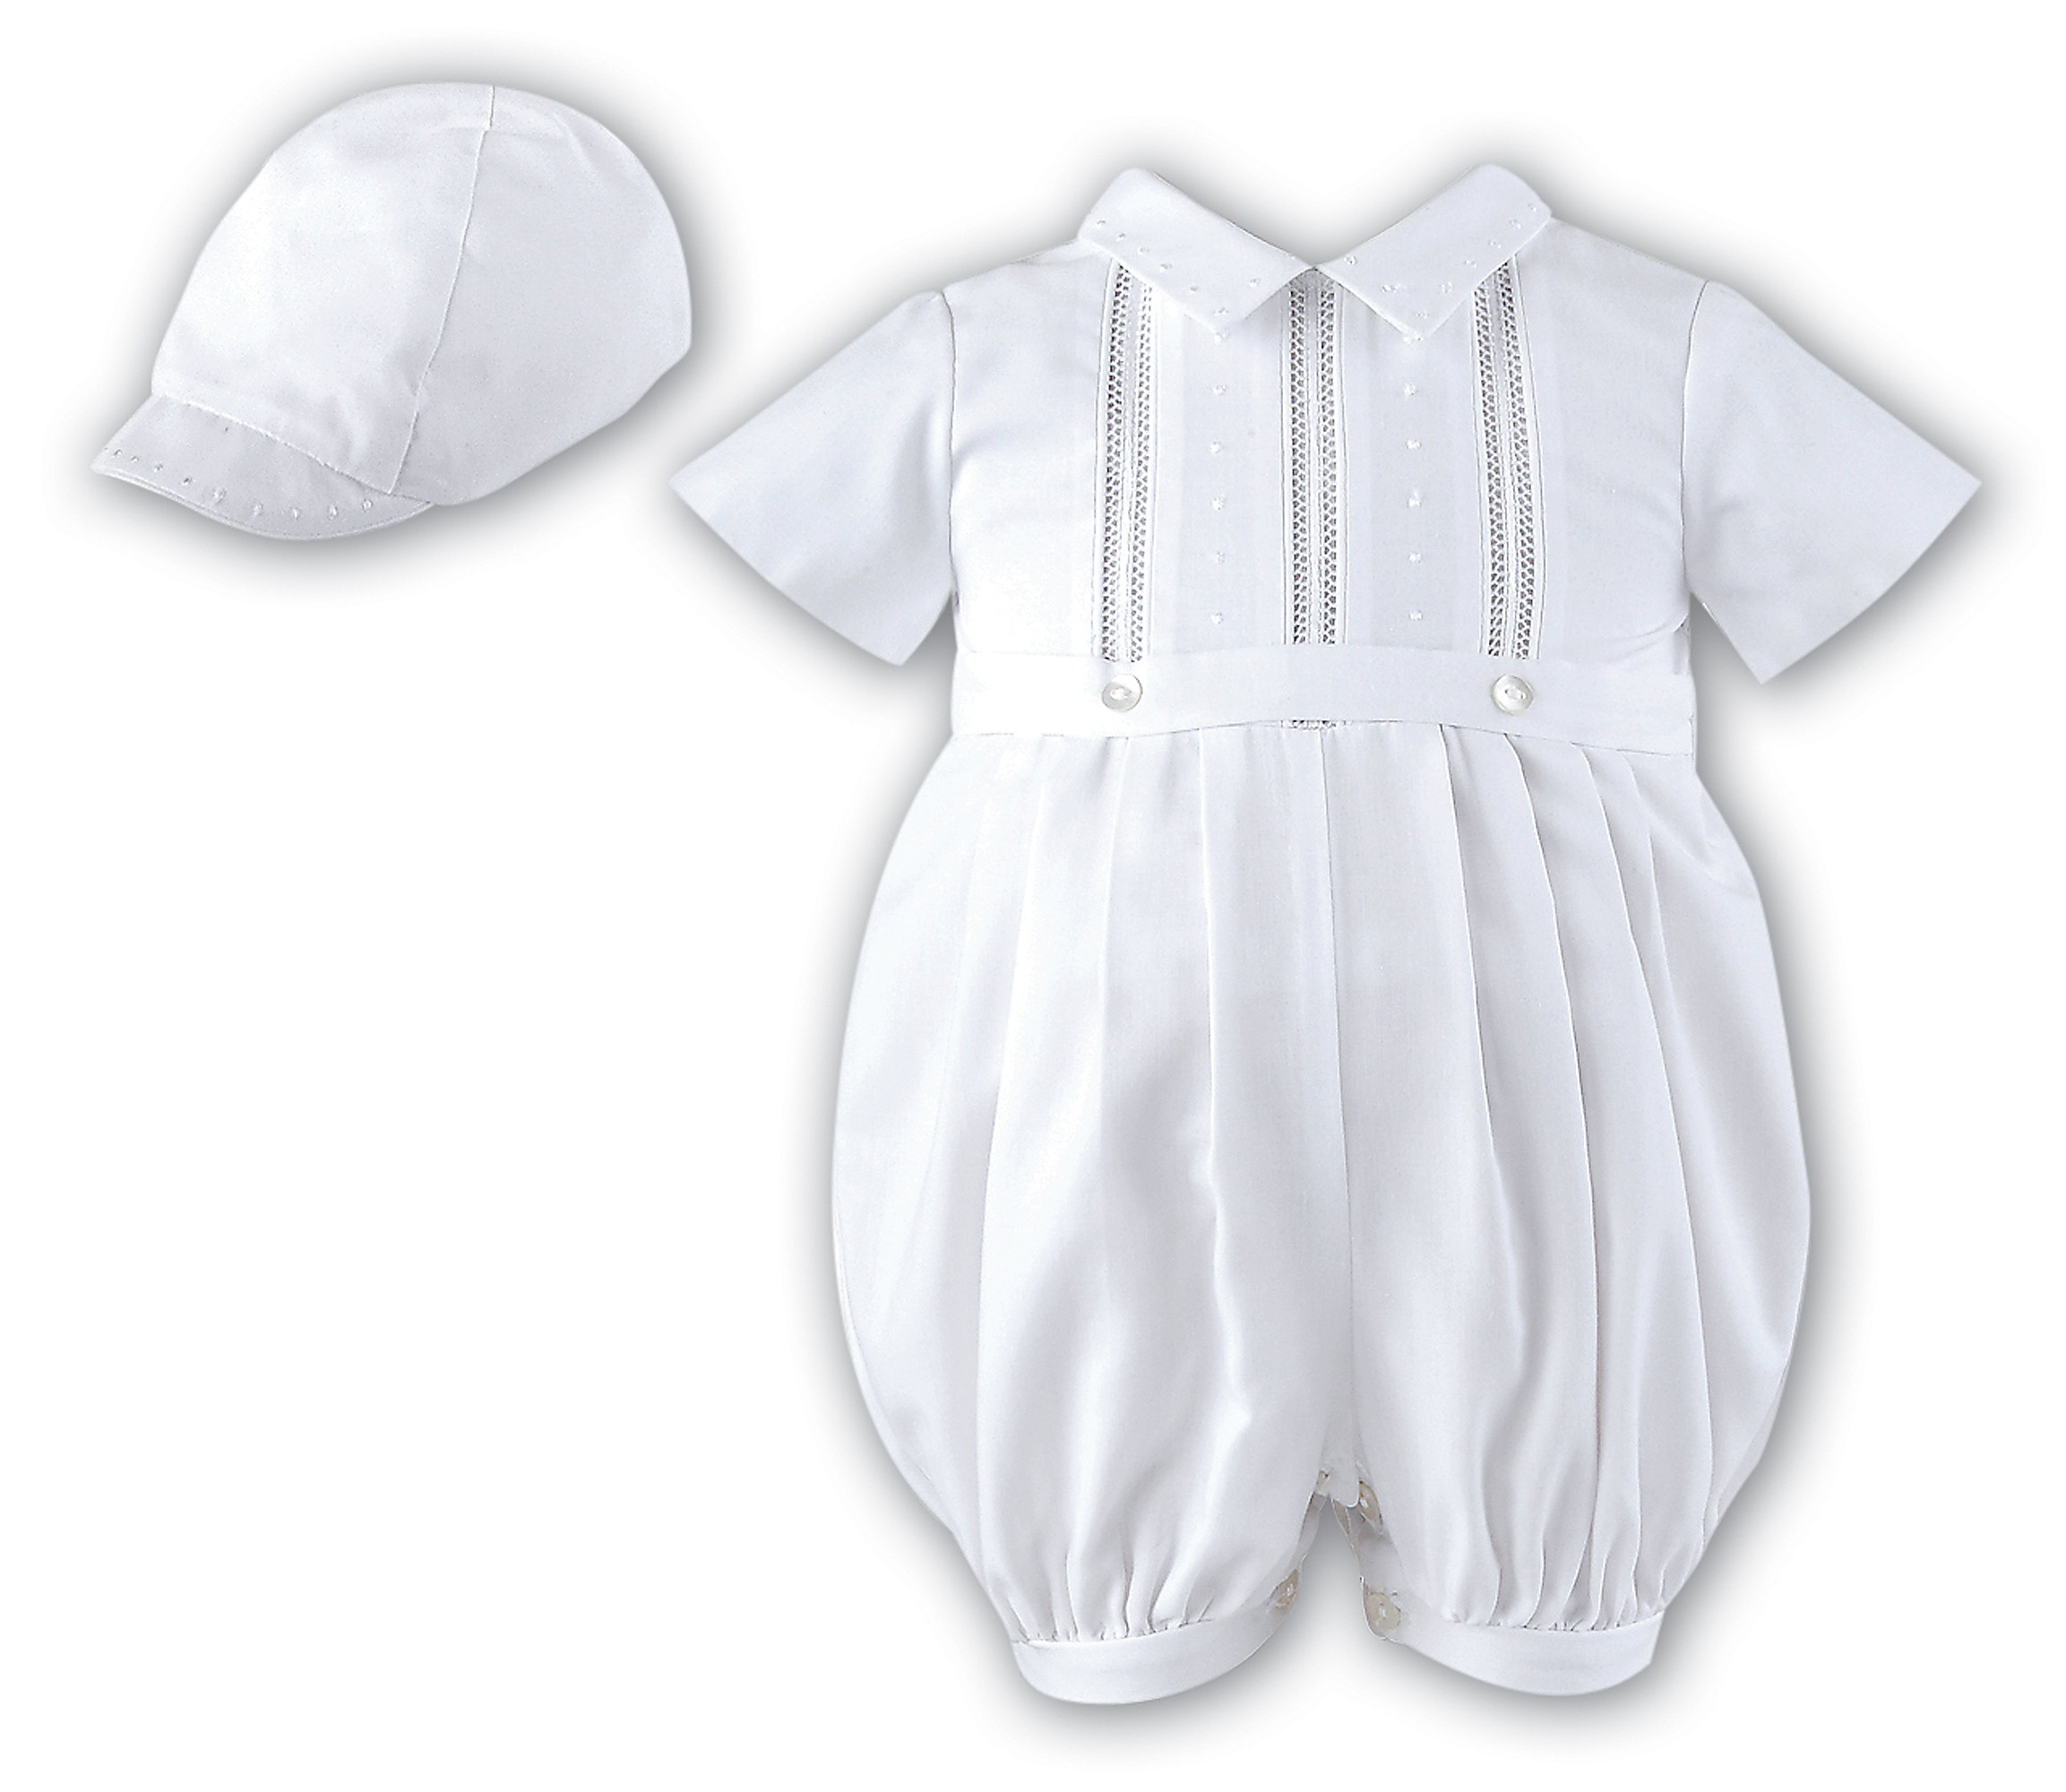 White Short Sleeved Boys Christening Romper by Sarah Louise Style 209SZ 0d5dda81a